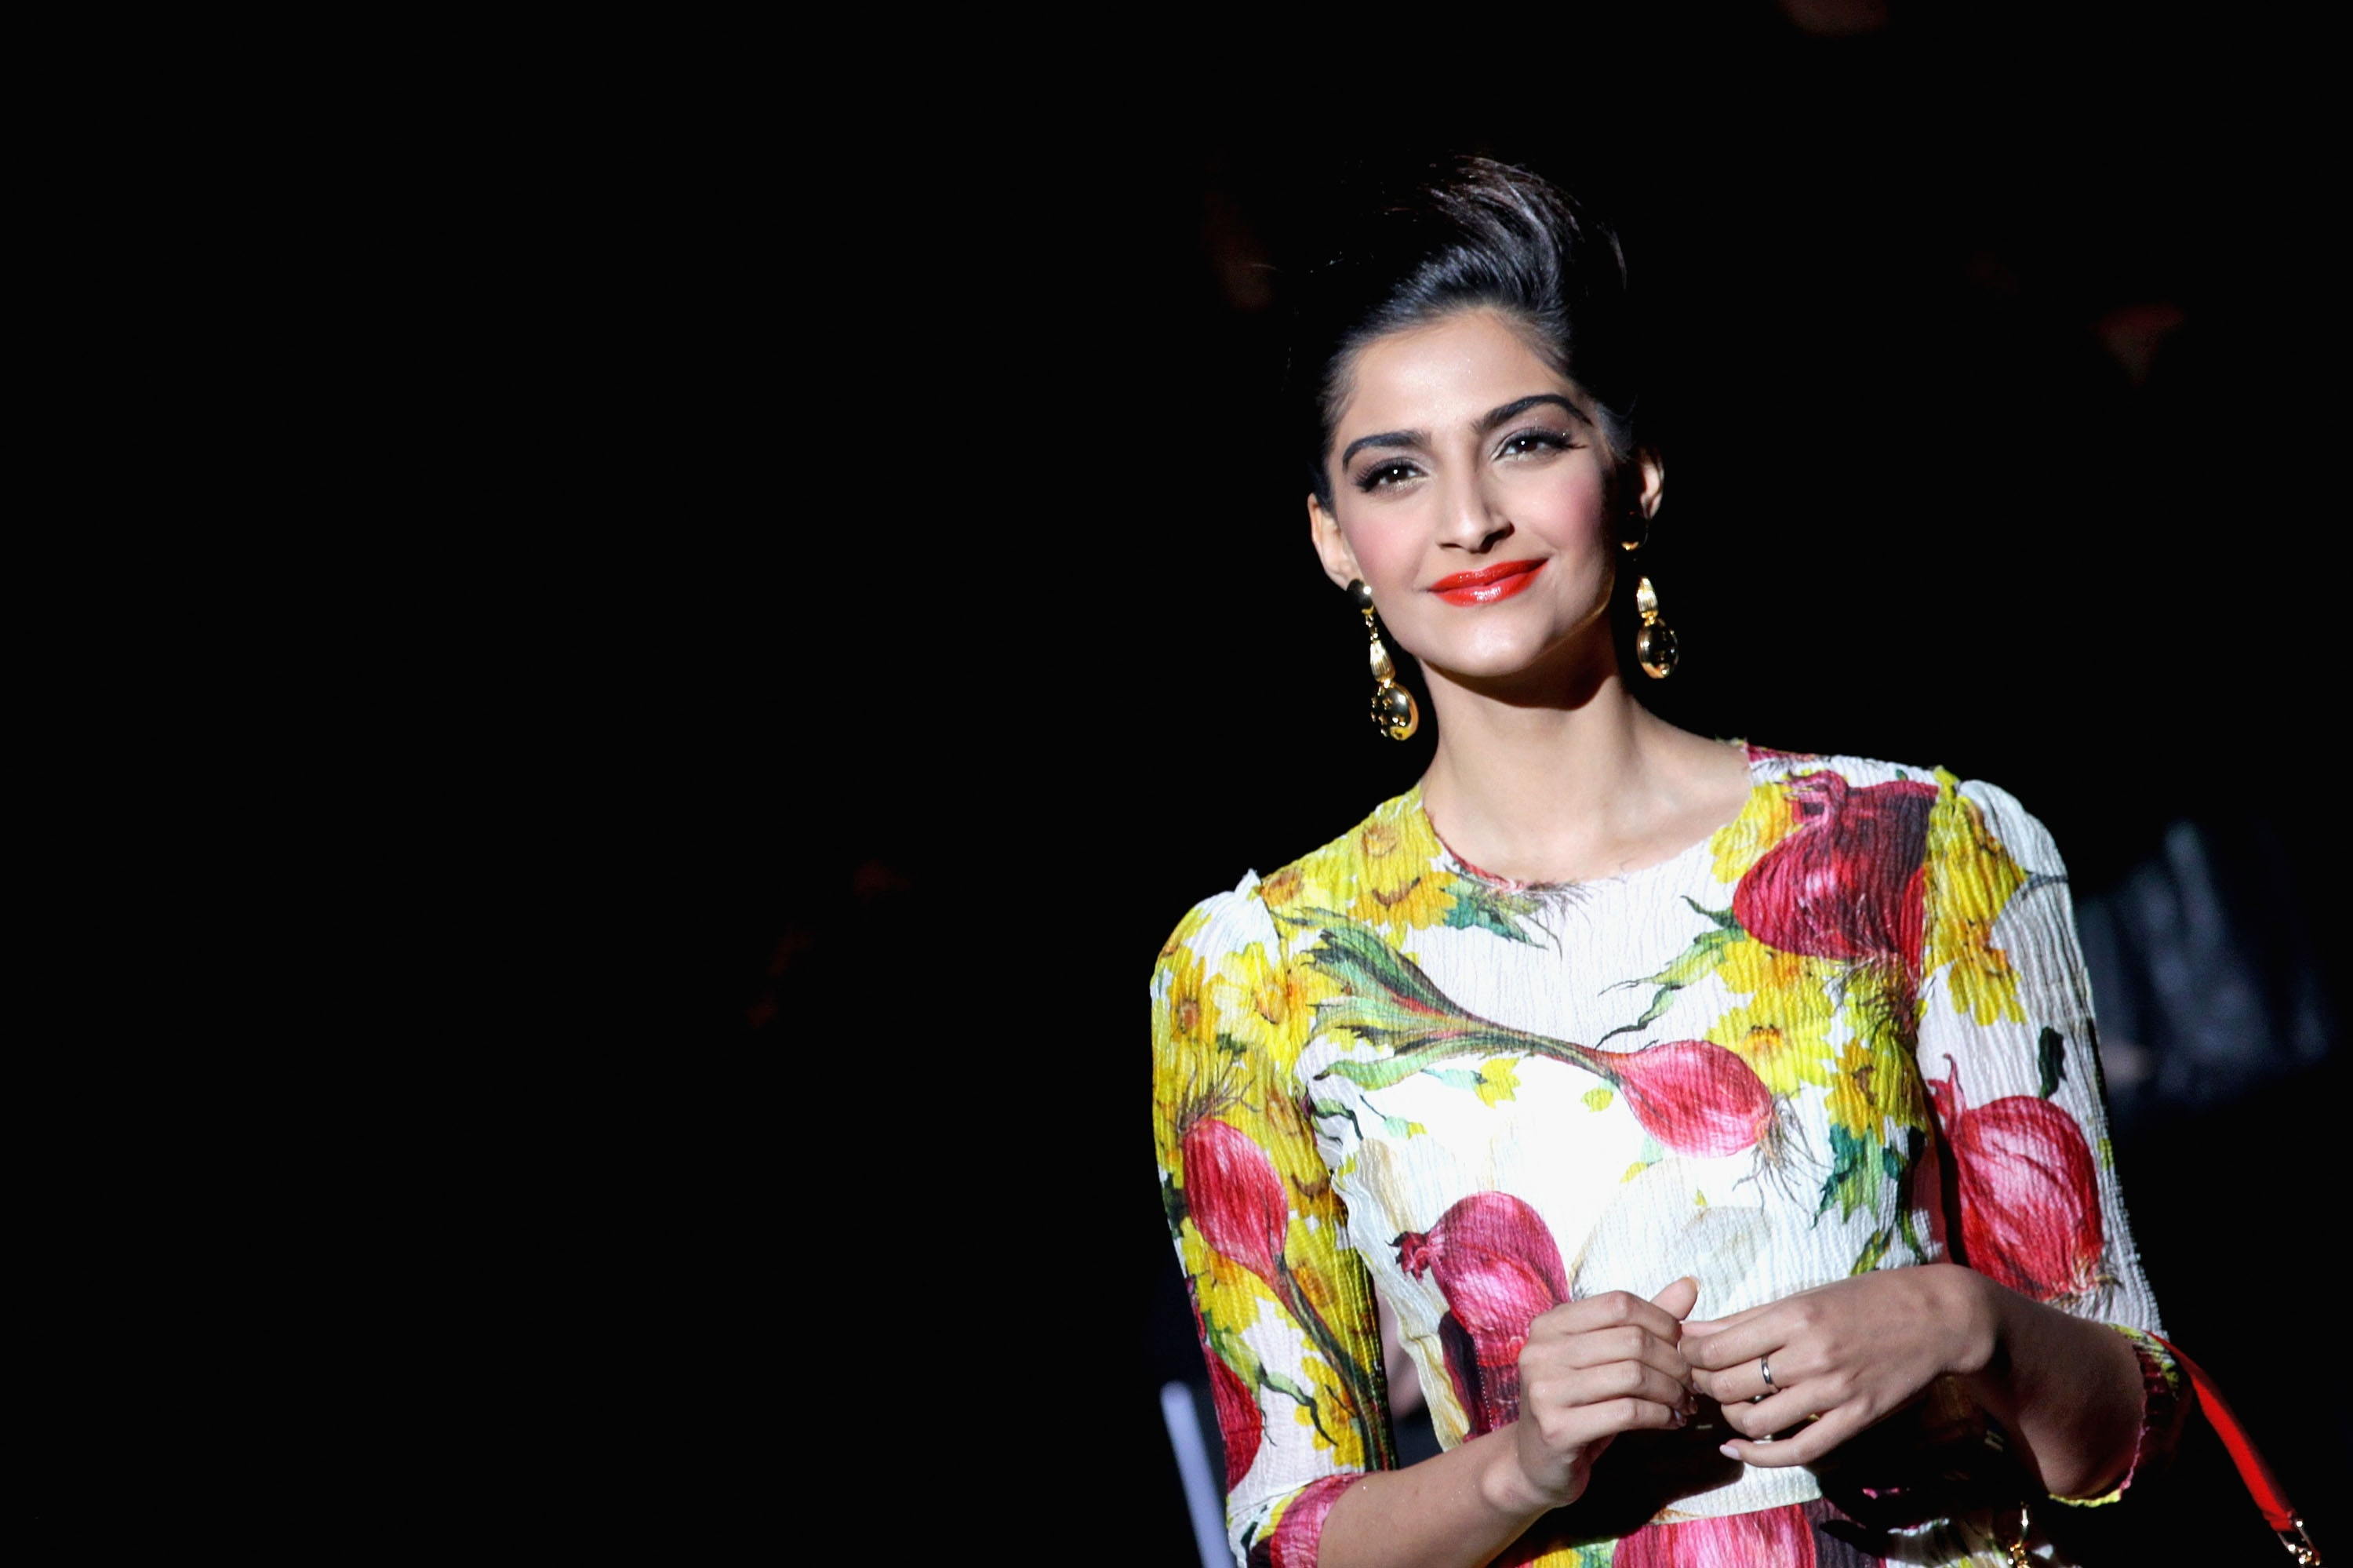 ... Wallpaper Abyss Everything Actresses From India Sonam Kapoor 311219